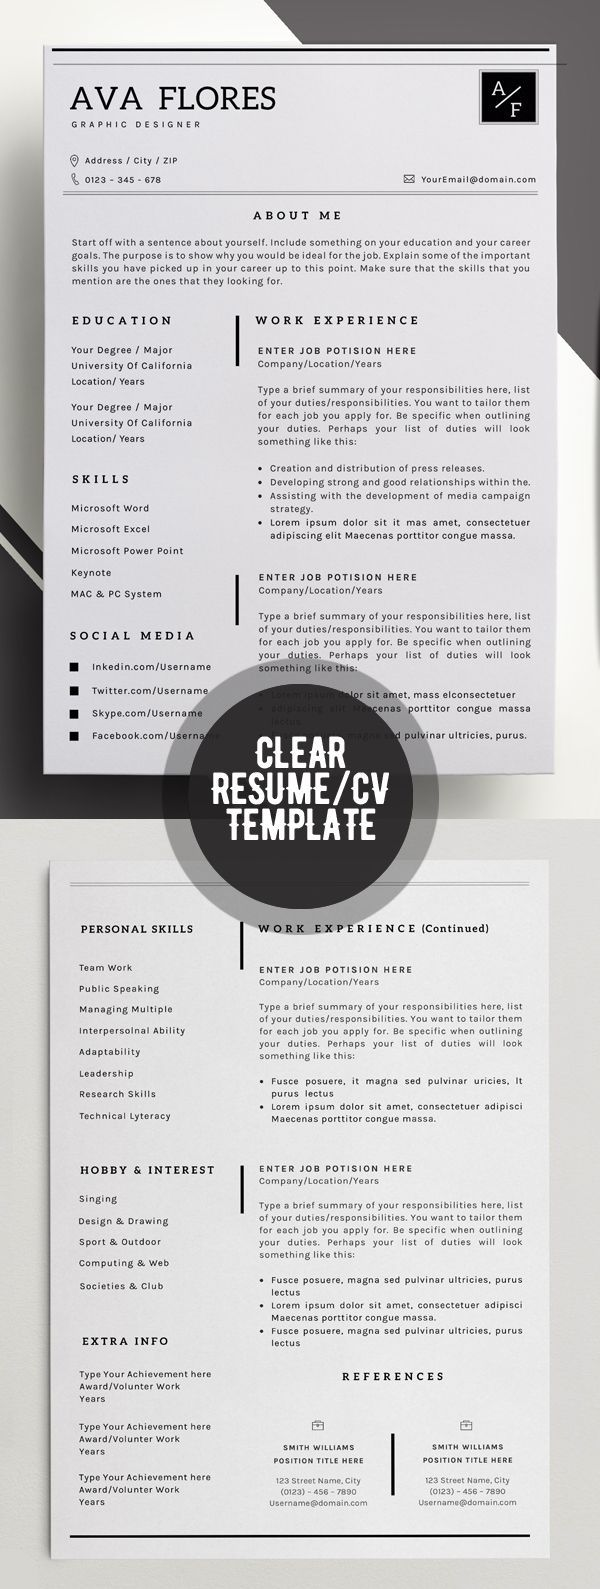 820 best Résumé images on Pinterest | Resume templates, Cv template ...